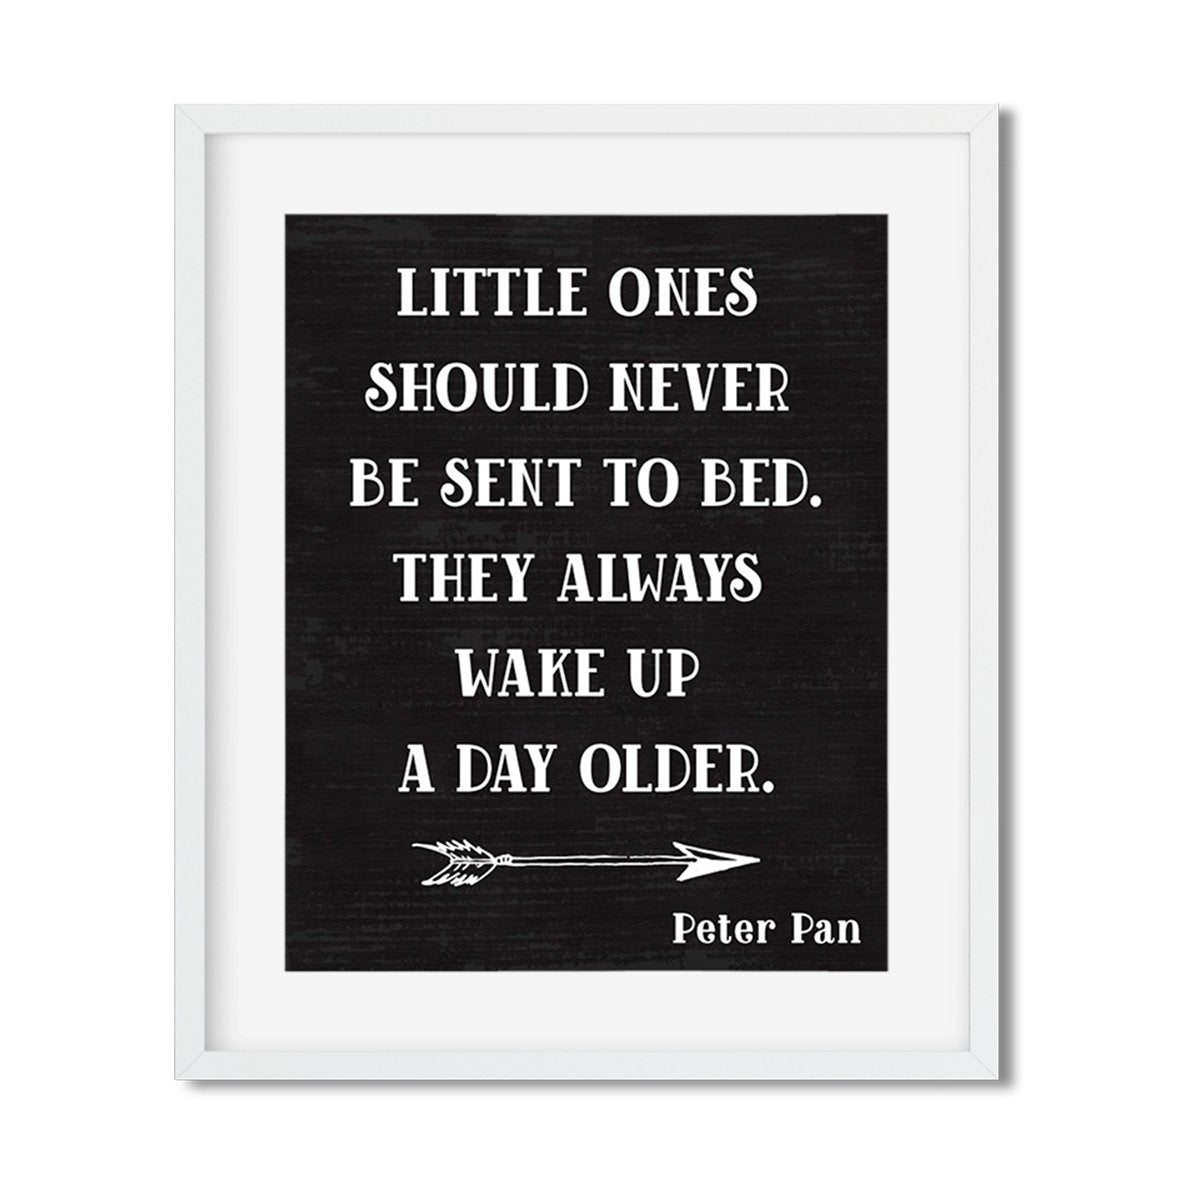 Little ones should never be sent to bed - Art Print - Netties Expressions